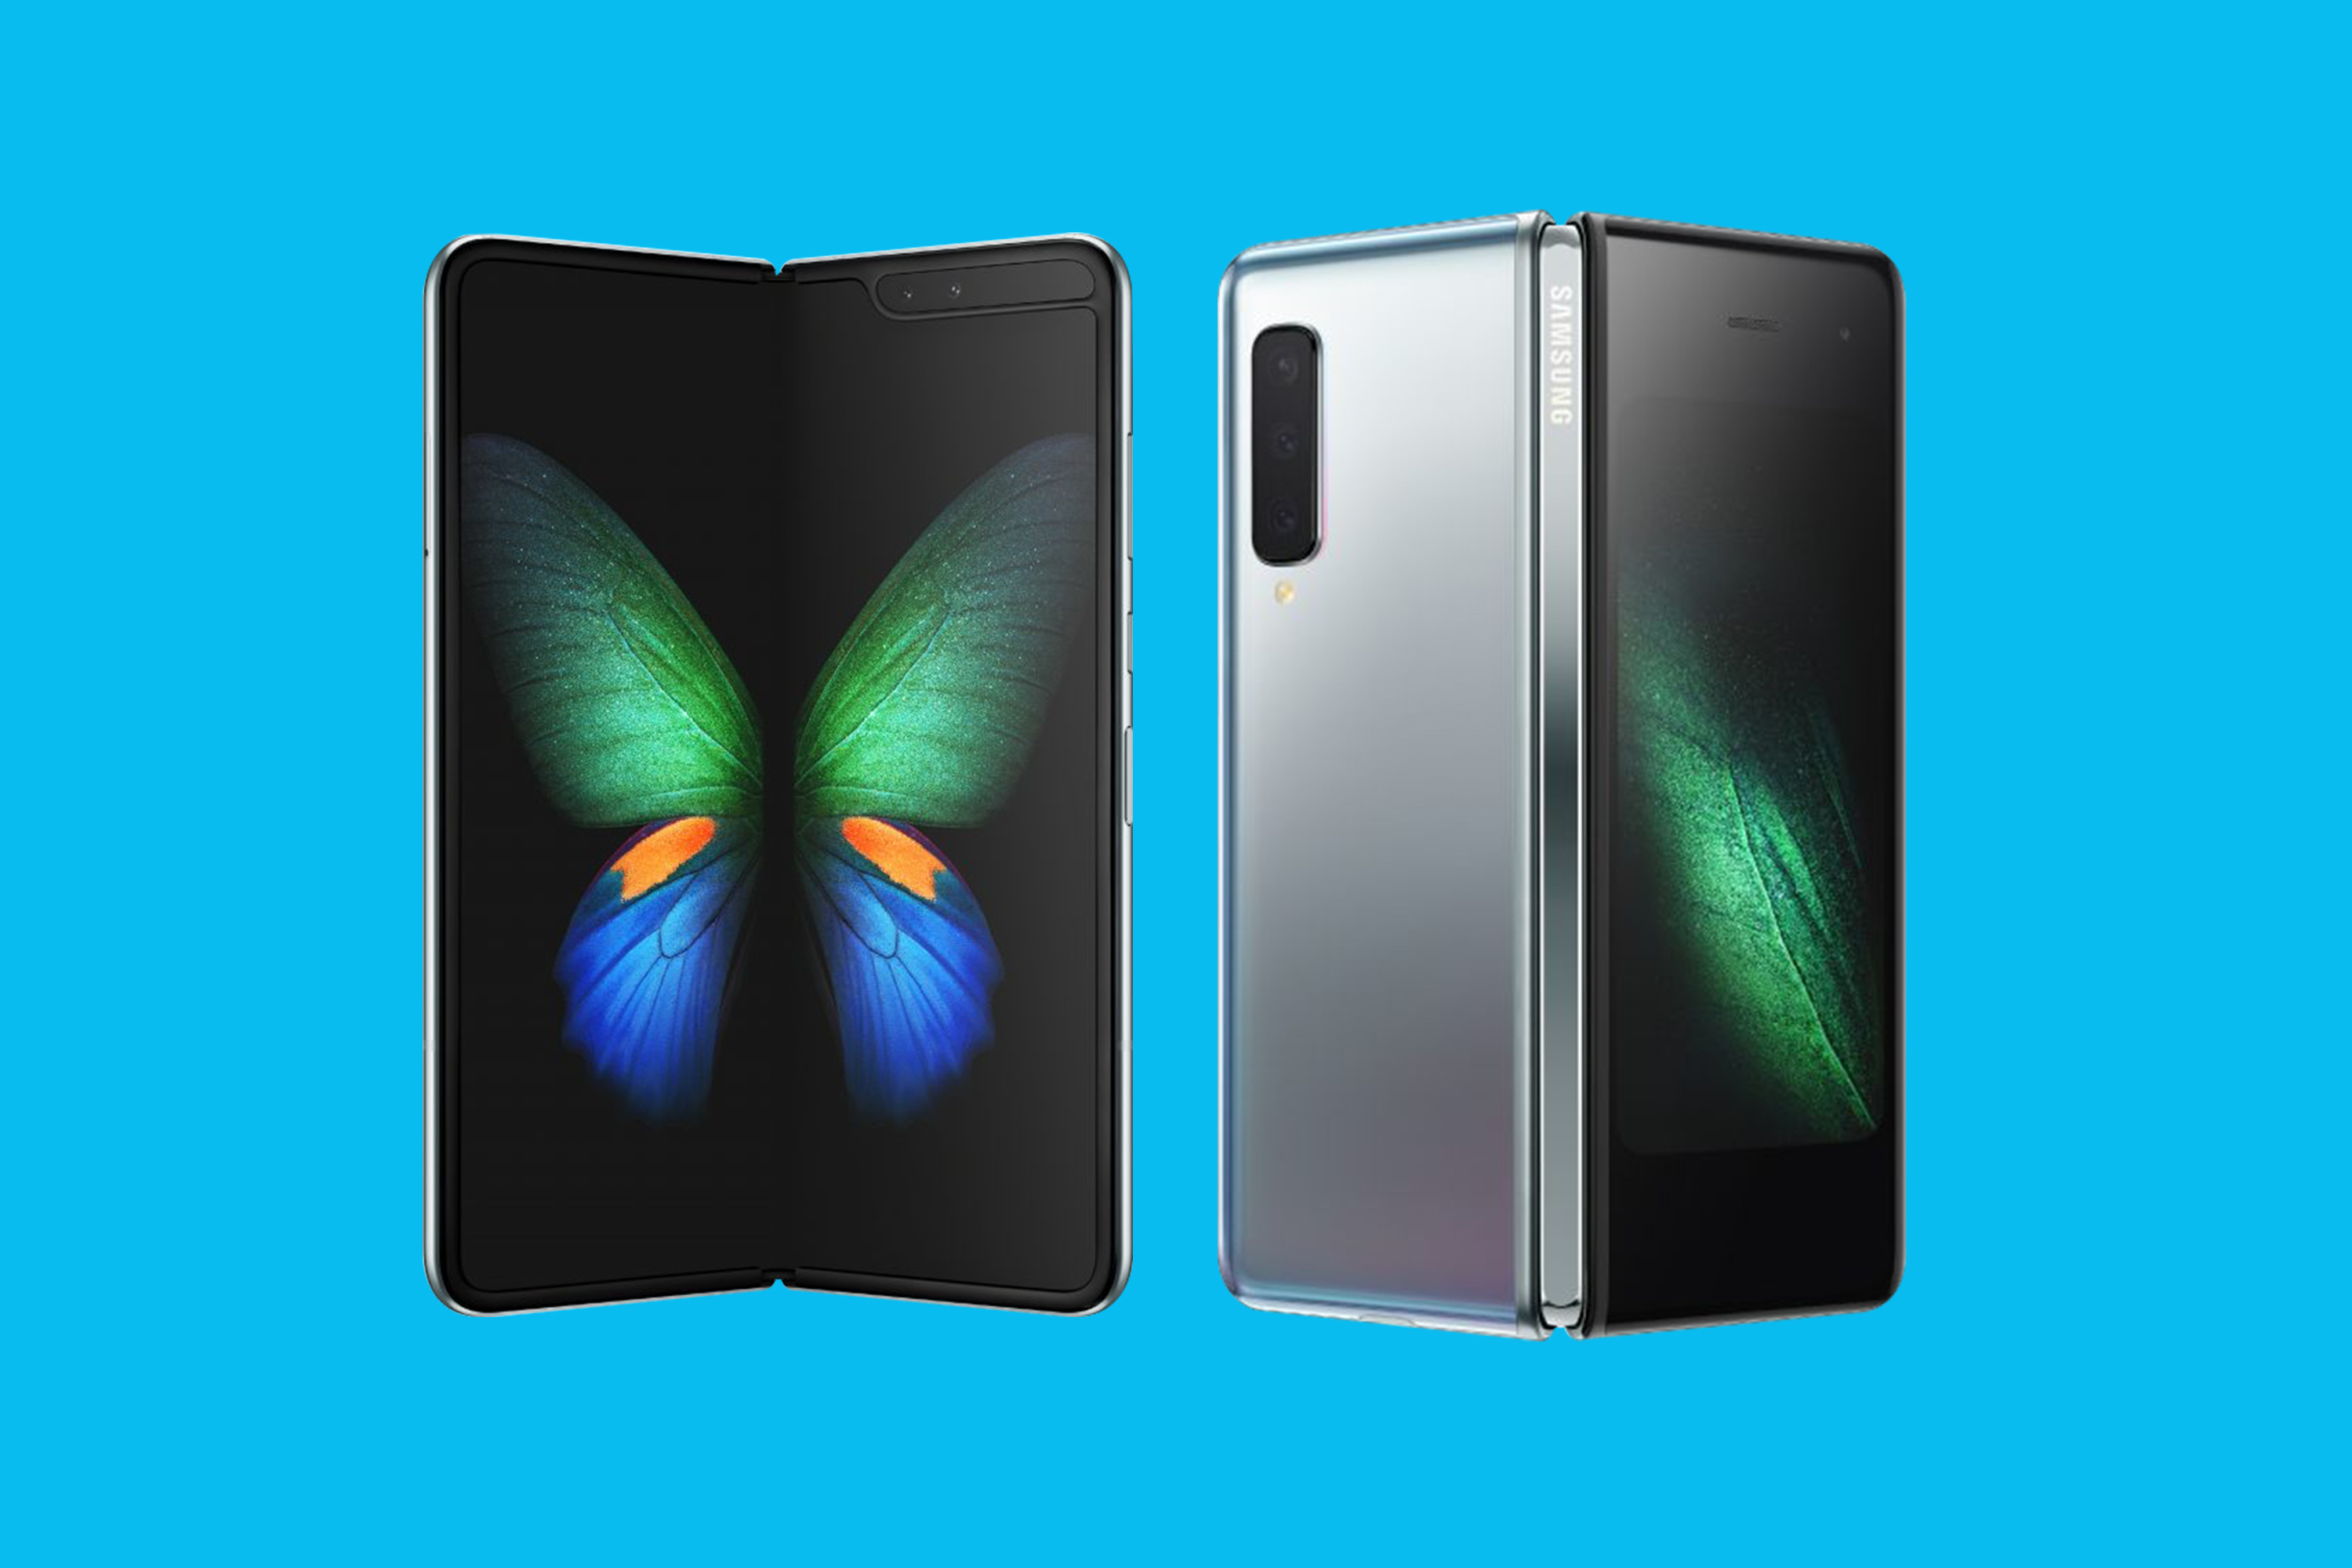 See the Galaxy Fold, Samsung's new foldable phone